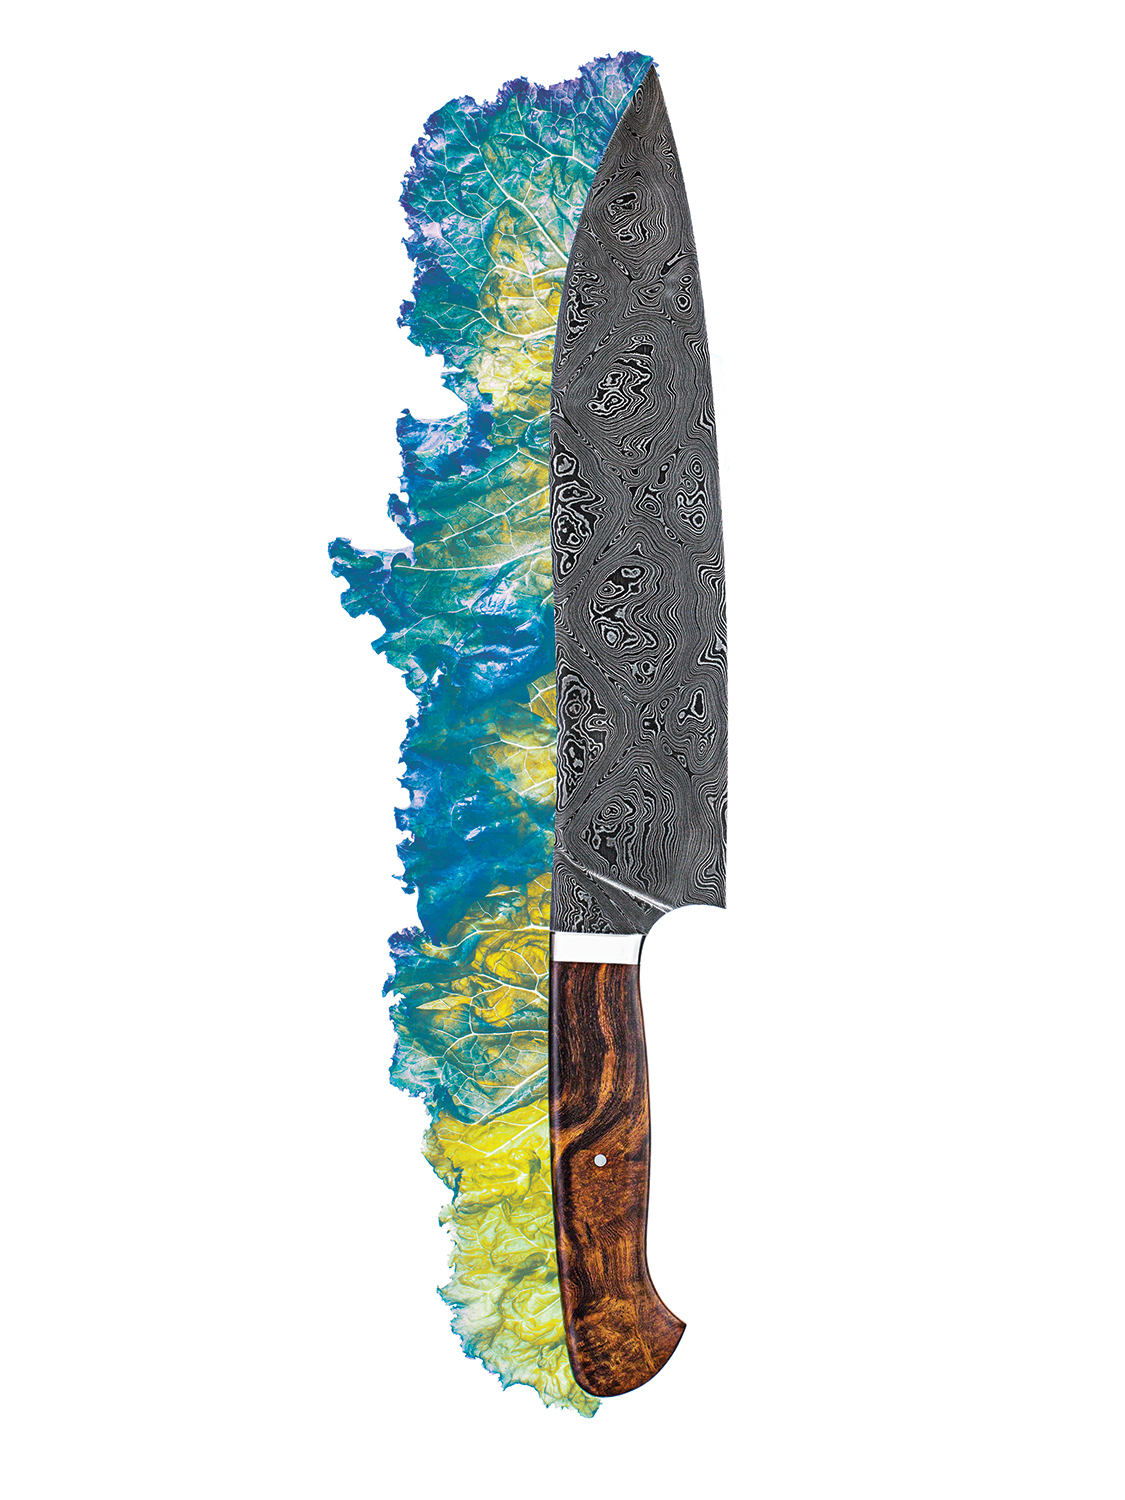 Knives_exex-233-Edit_WEB.jpg